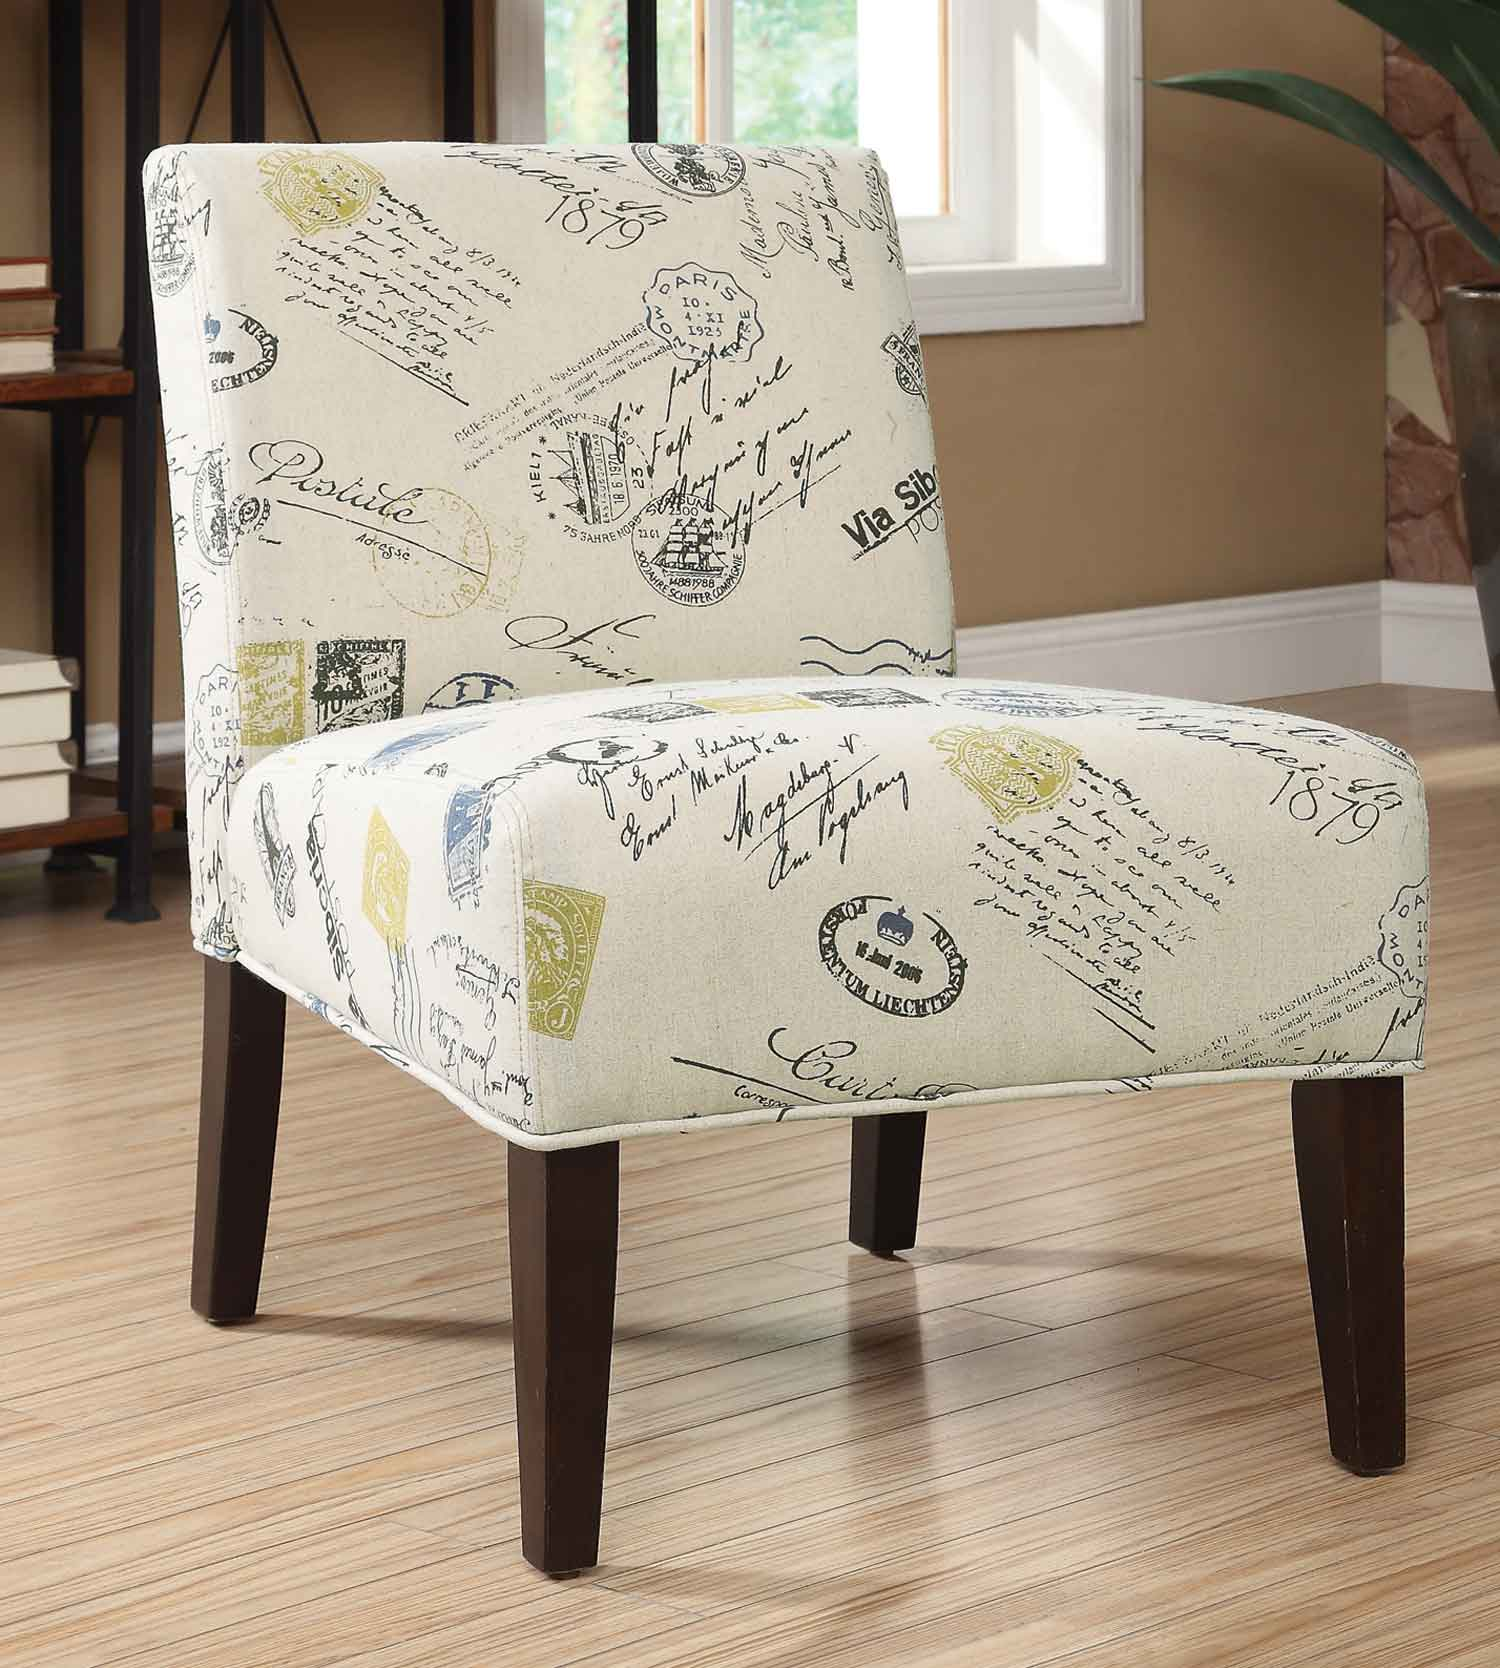 Coaster 902195 Accent Chair - Signature/Stamp Pattern